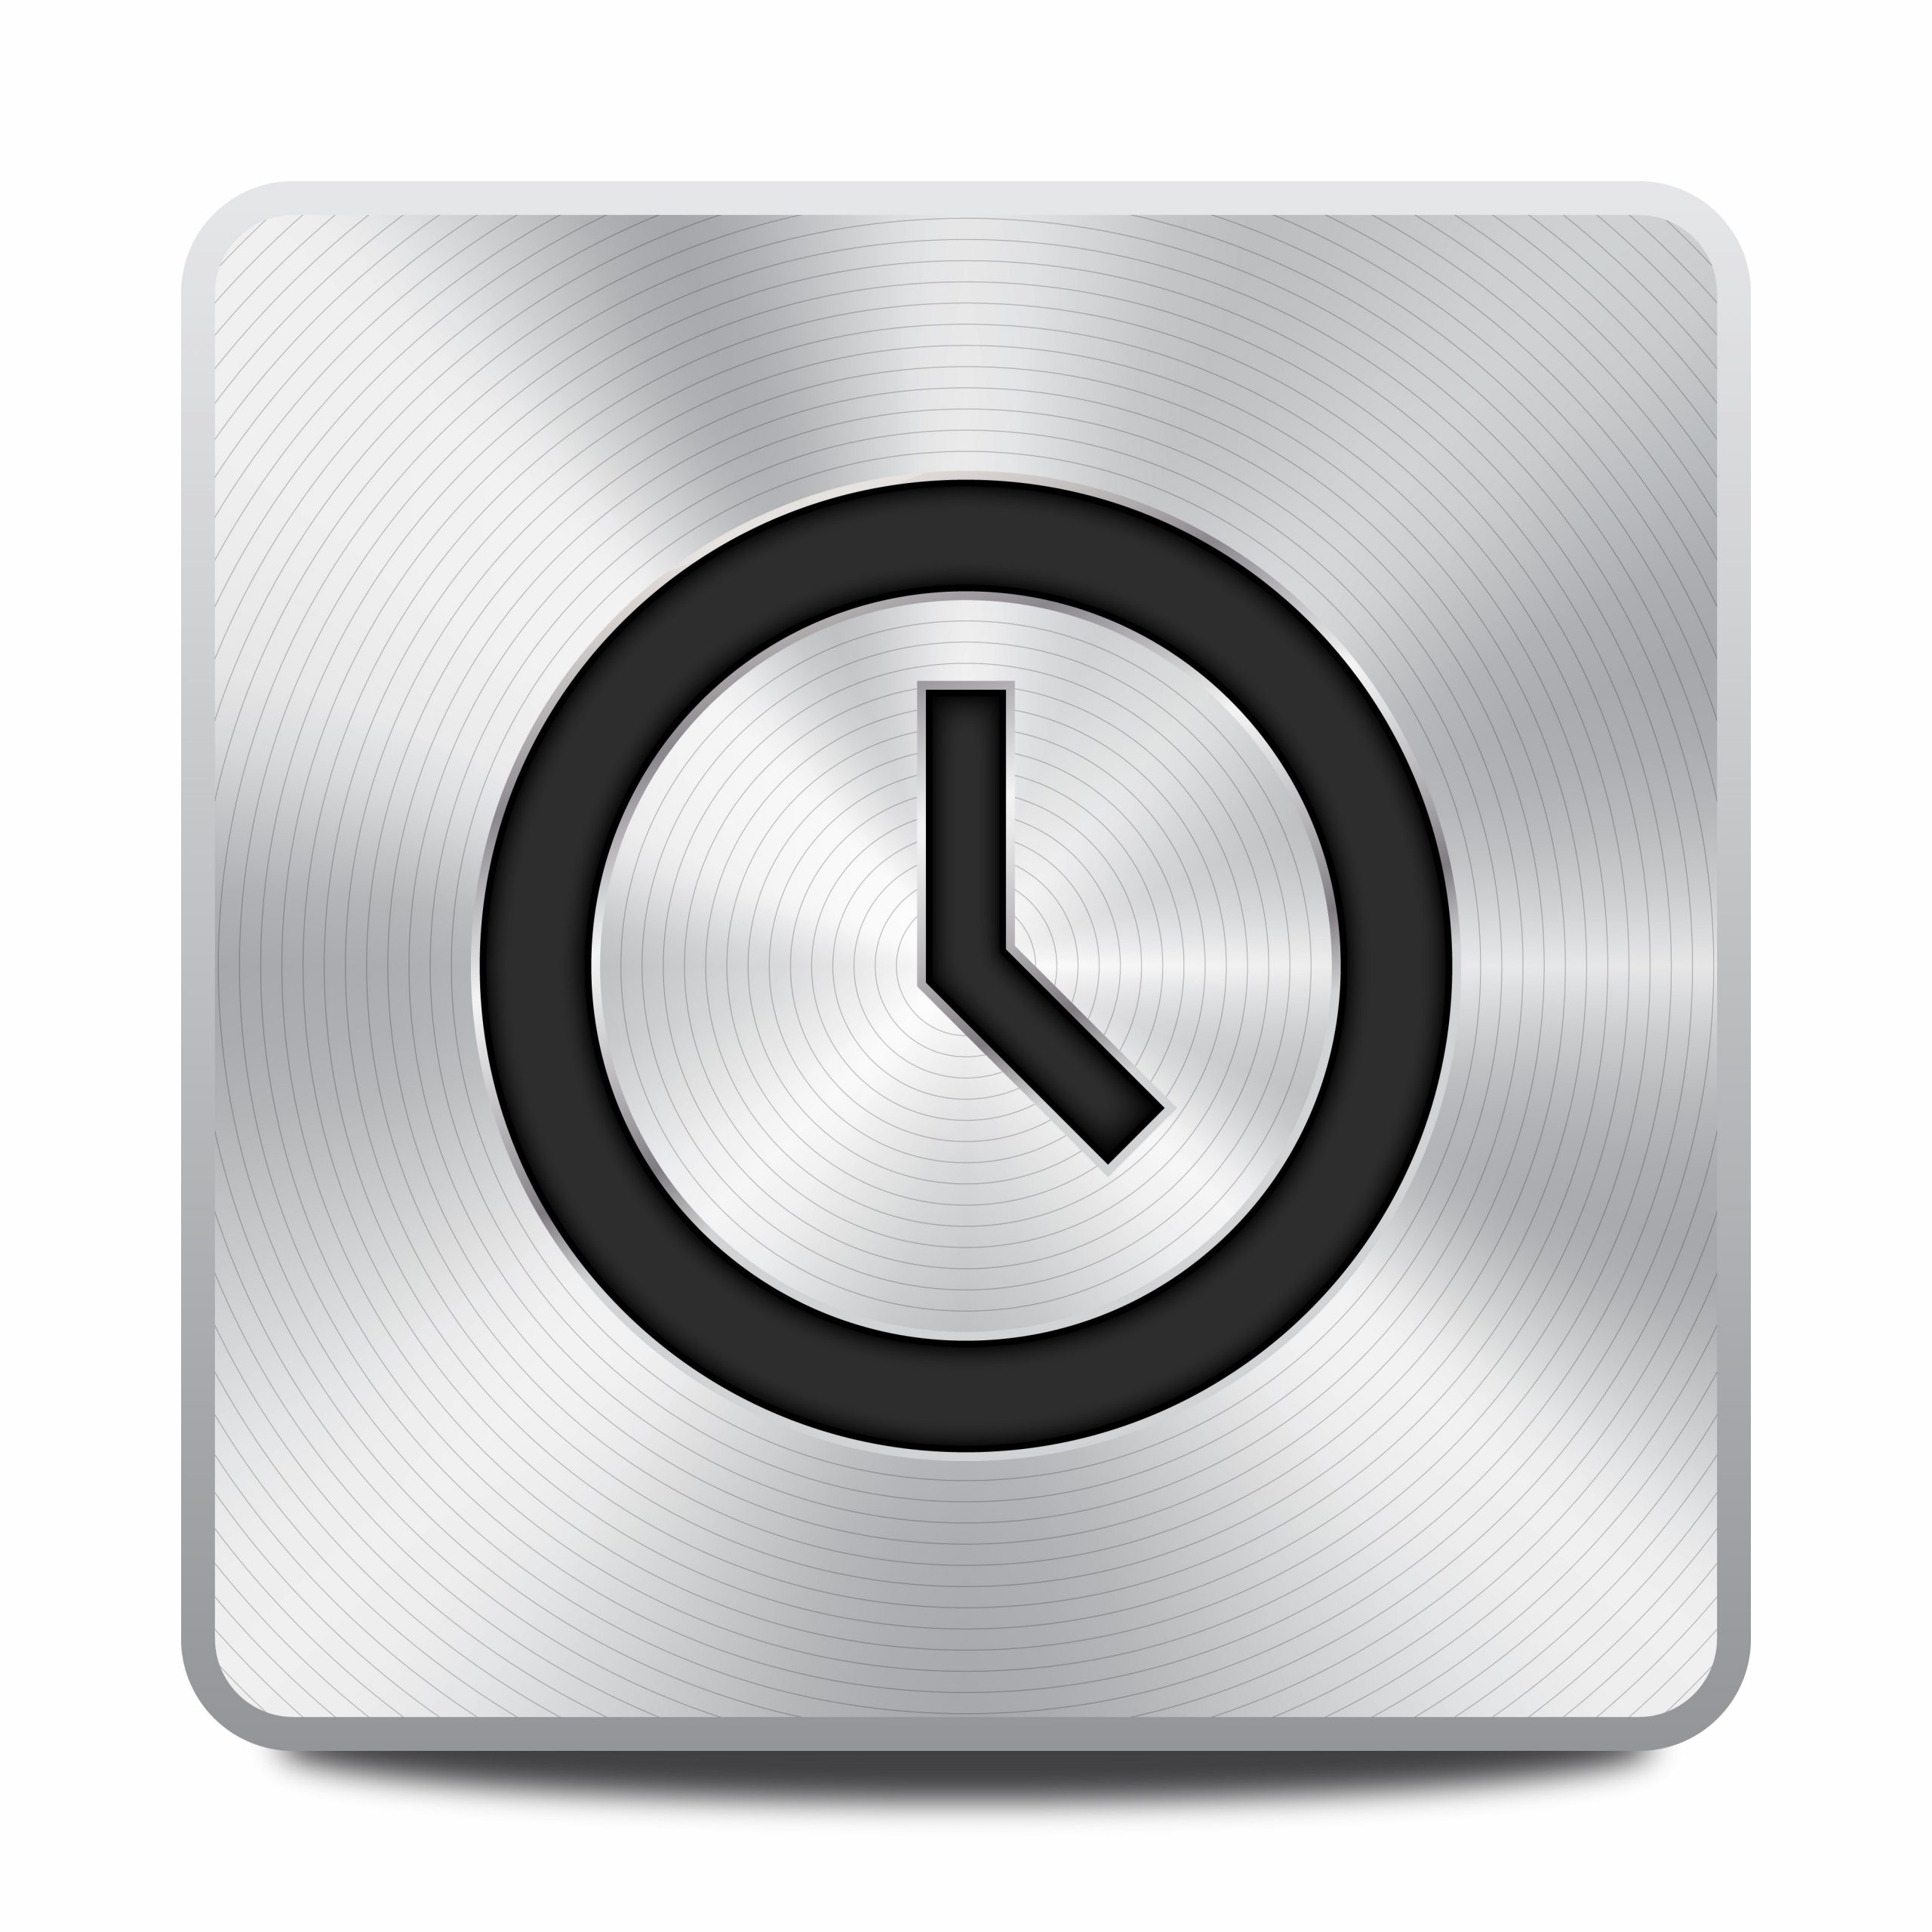 Shutterstock Image of a clock with the time of 4 pm.